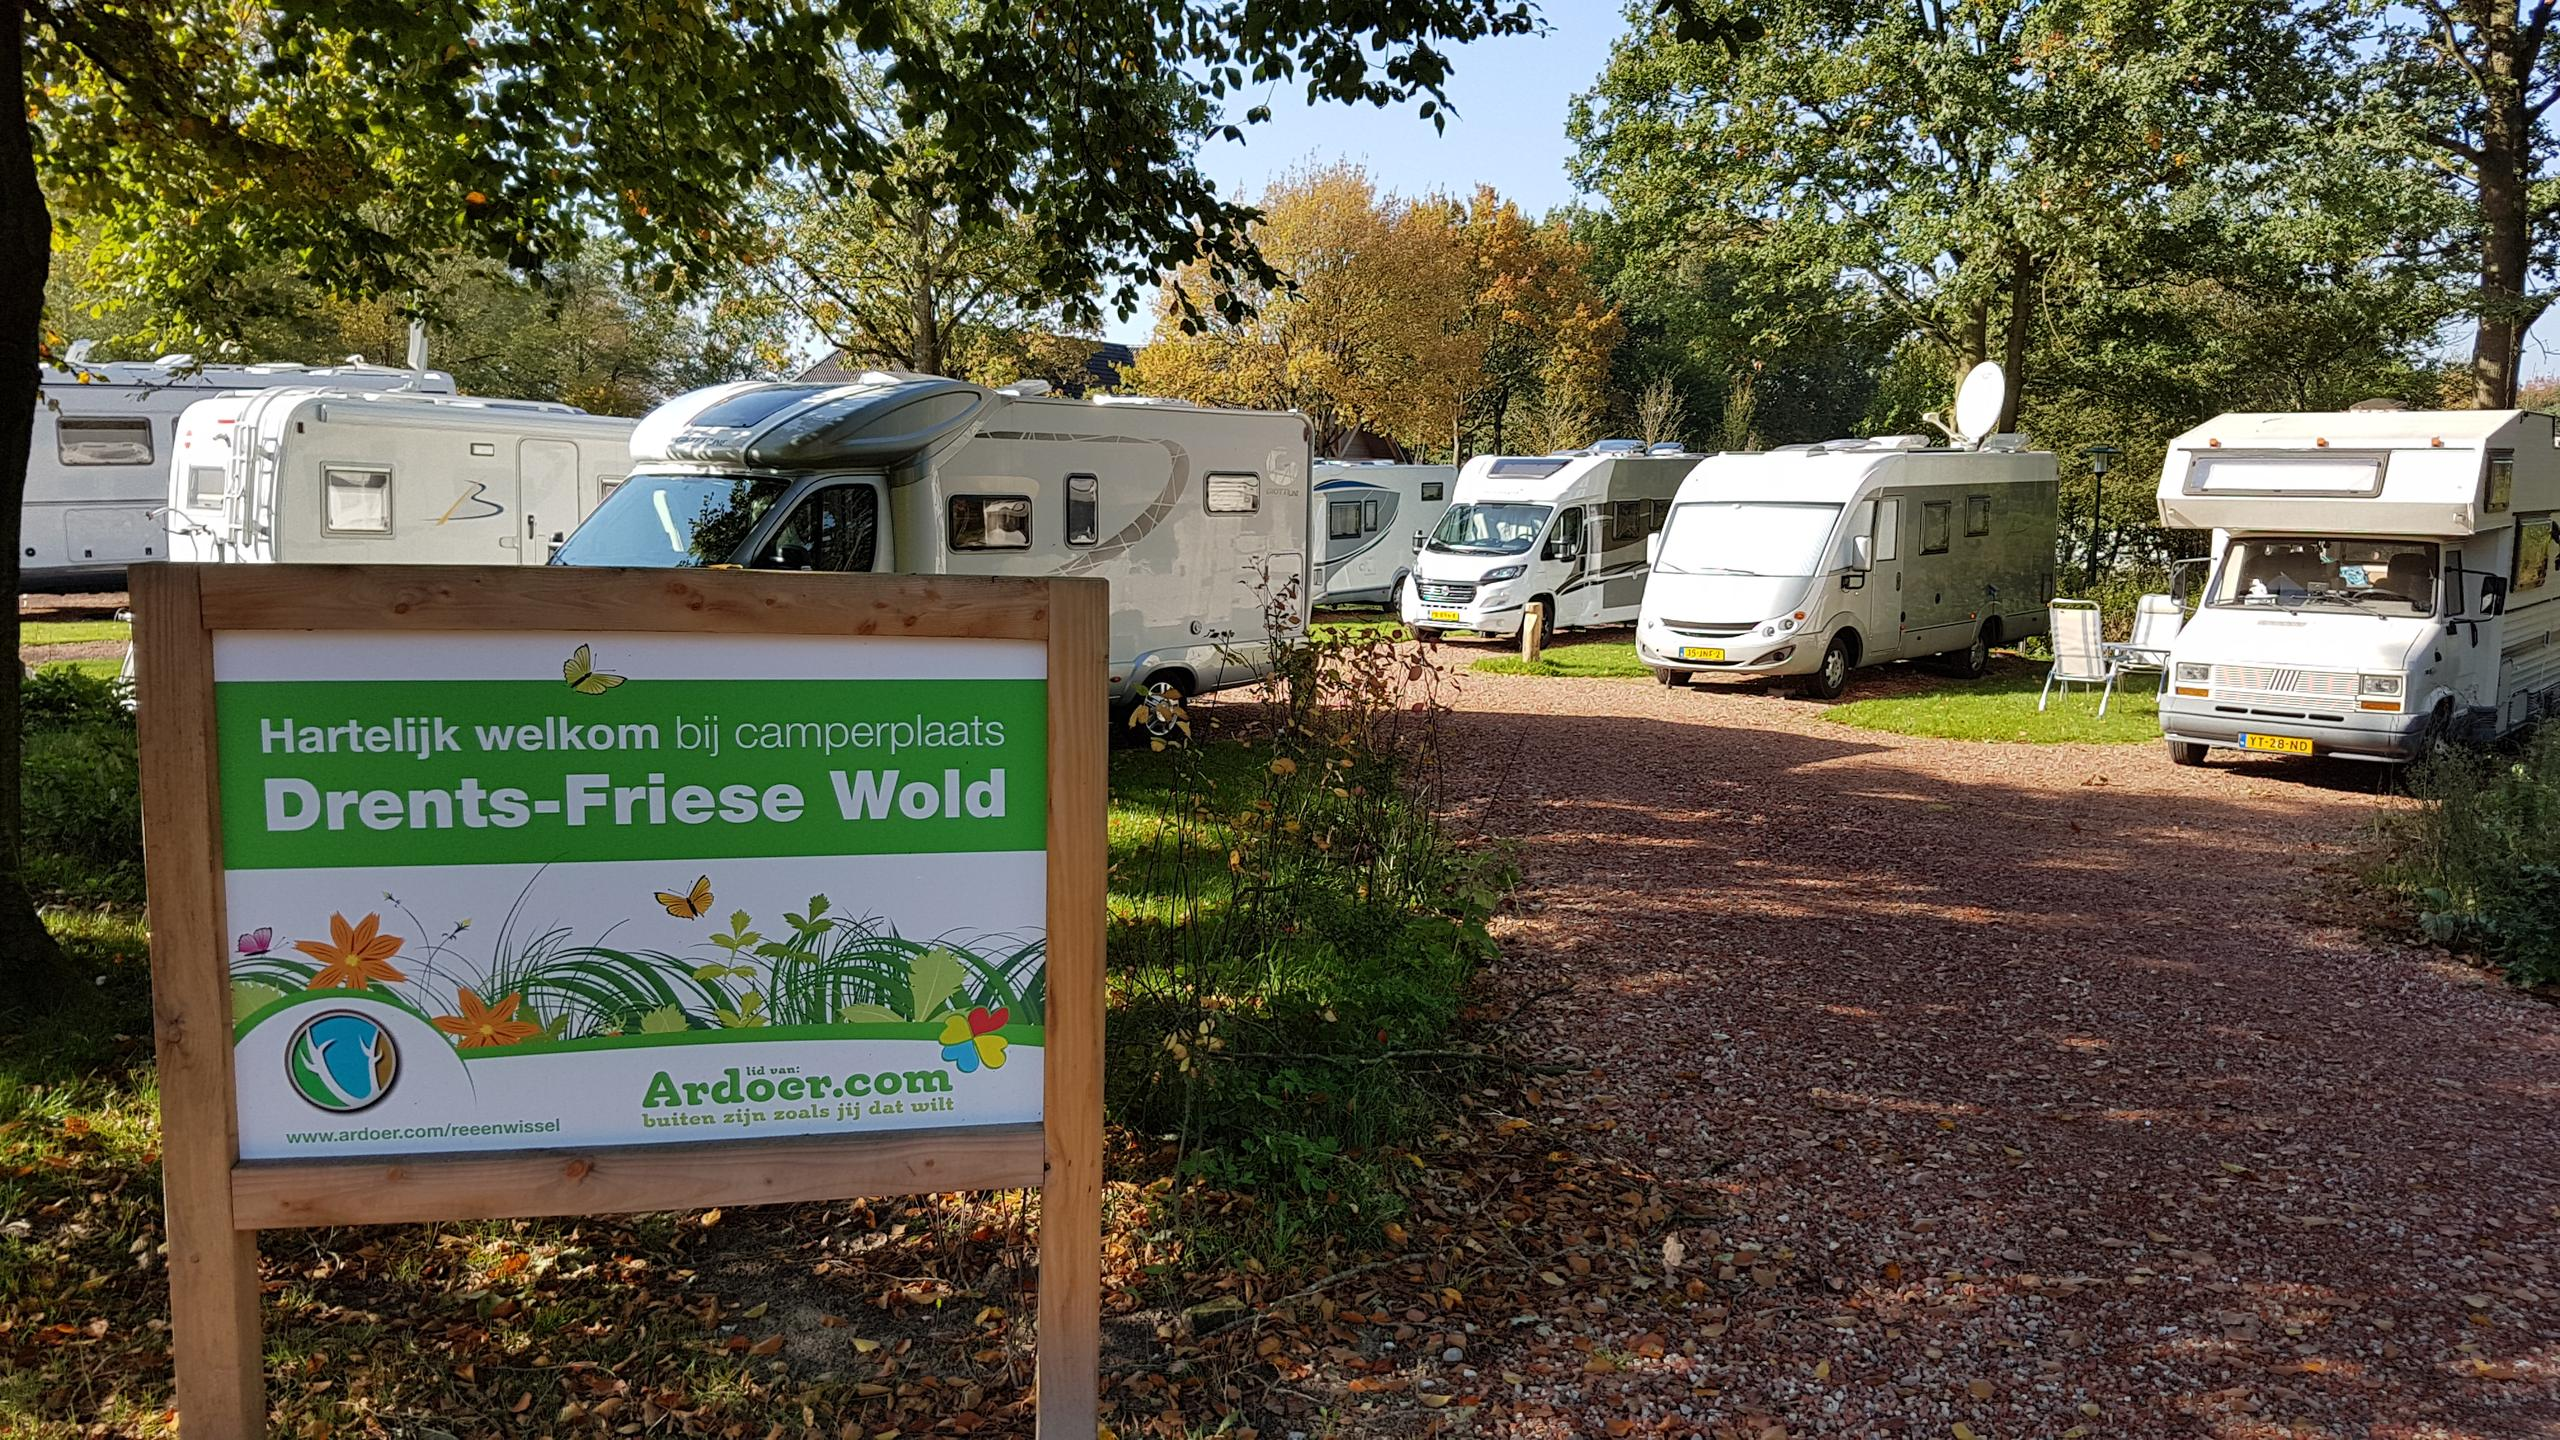 Camperplaats Drents-Friese Wold